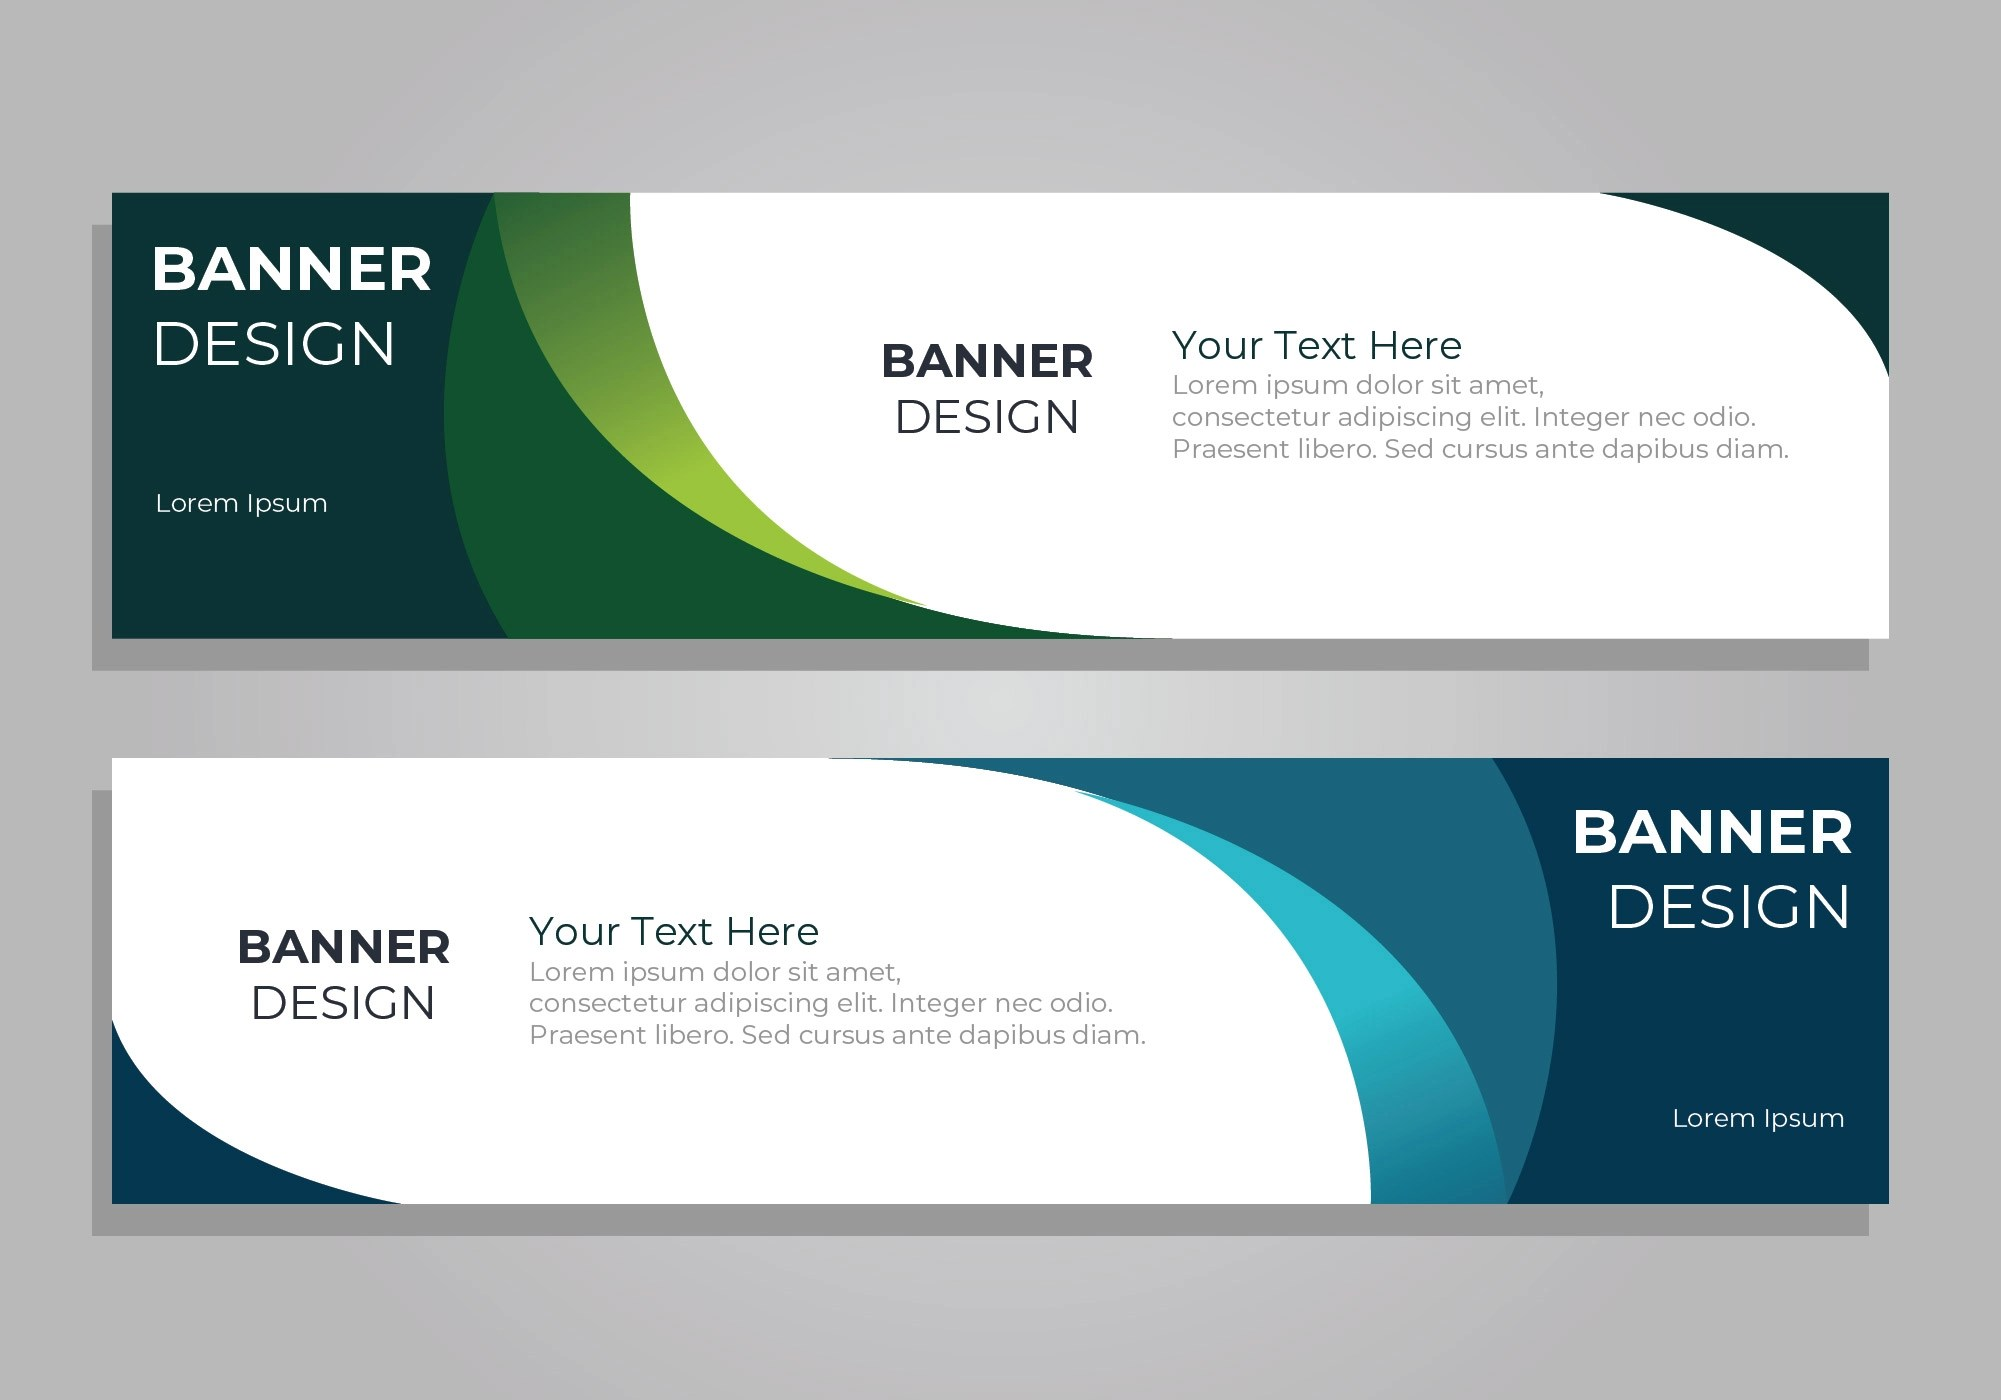 Banner Cdr Free Vector Art 29 260 Free Downloads